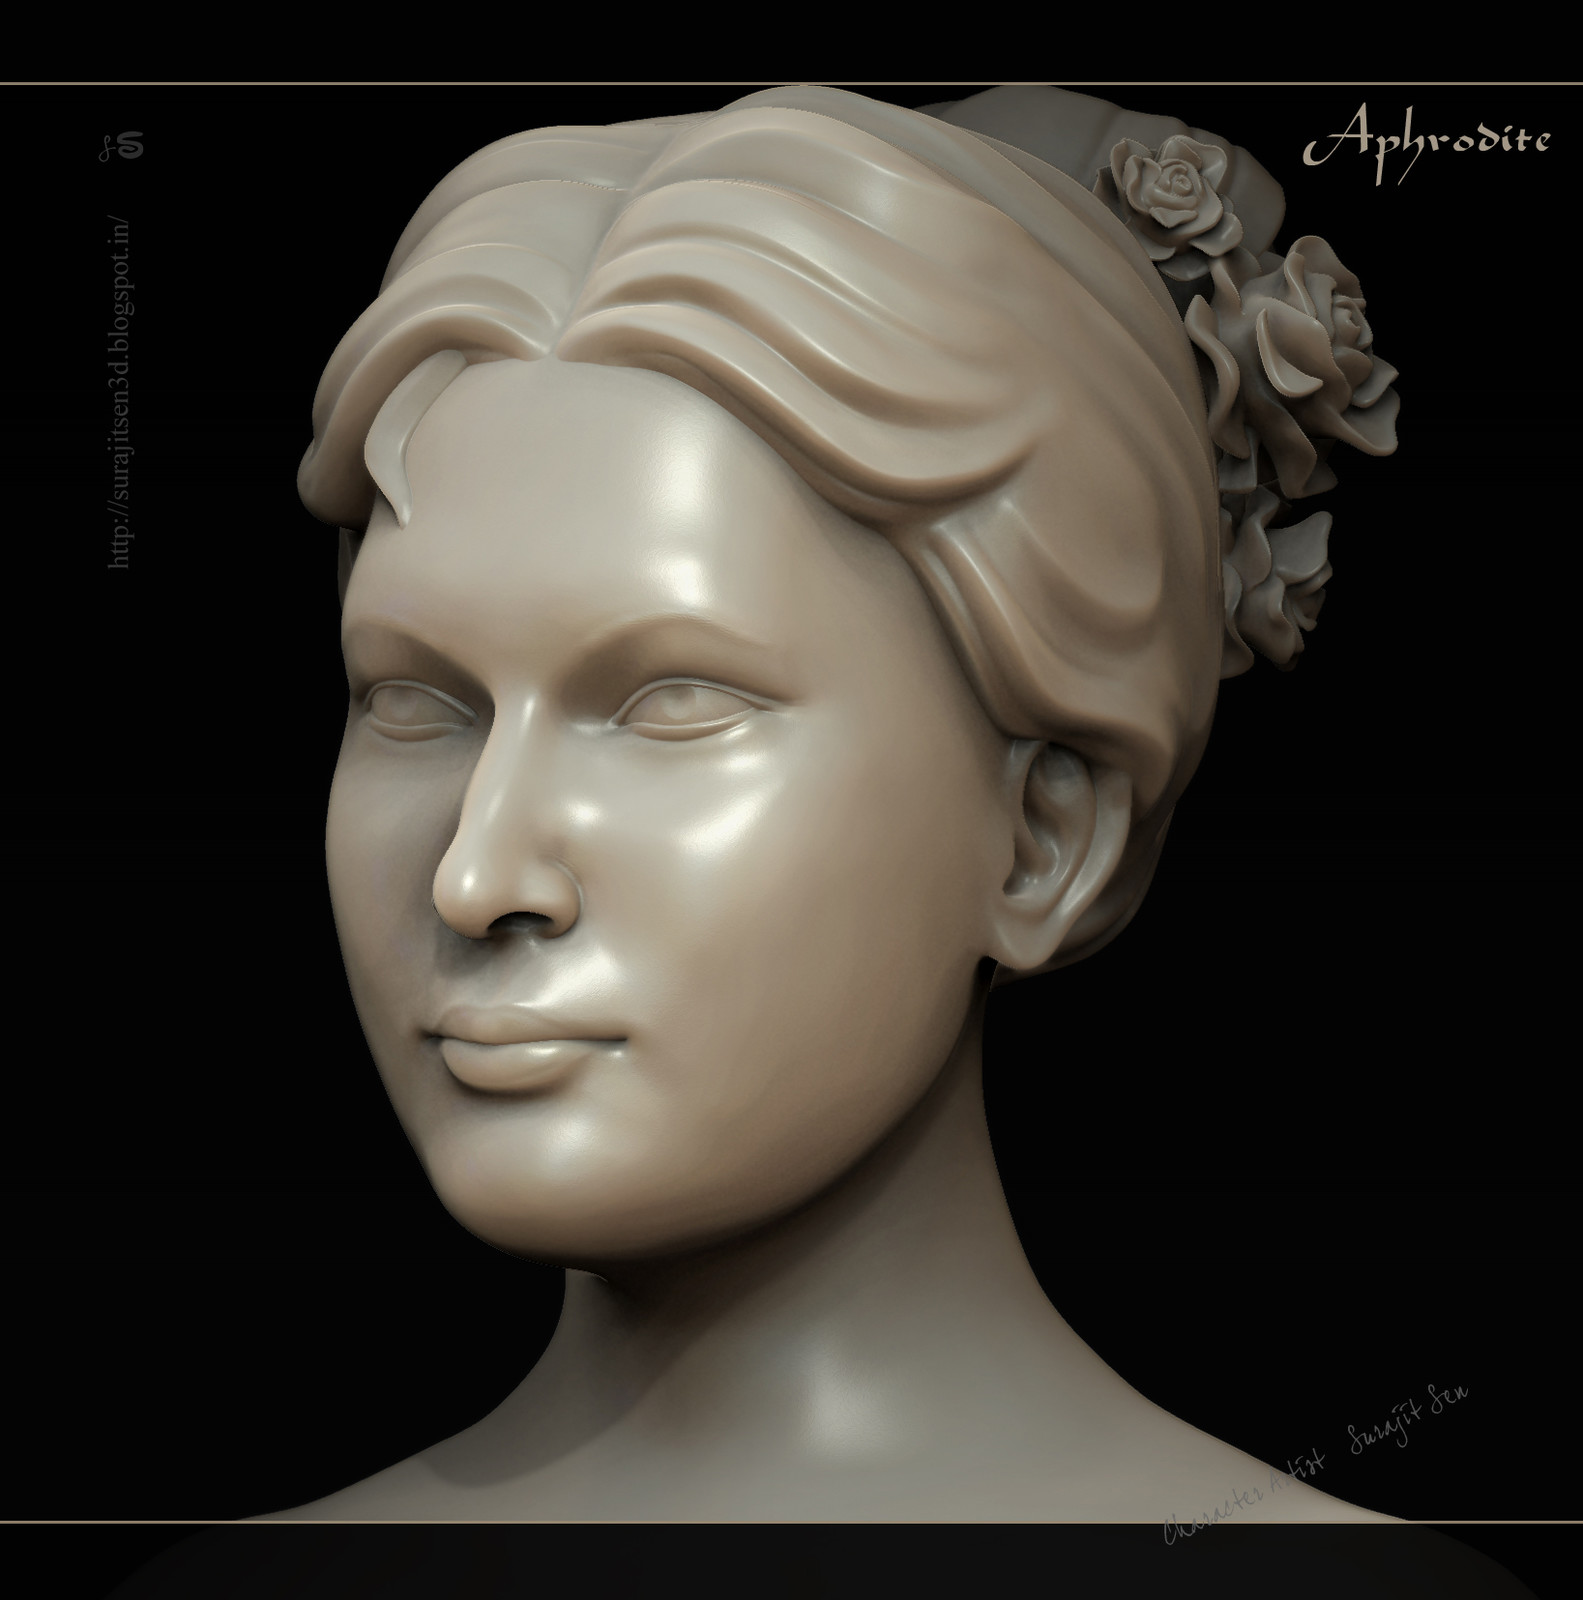 """My recent free time work ....Stone finish Female Sculpt.... """"Aphrodite - the mark of beauty"""". Wish to share  .....:)"""